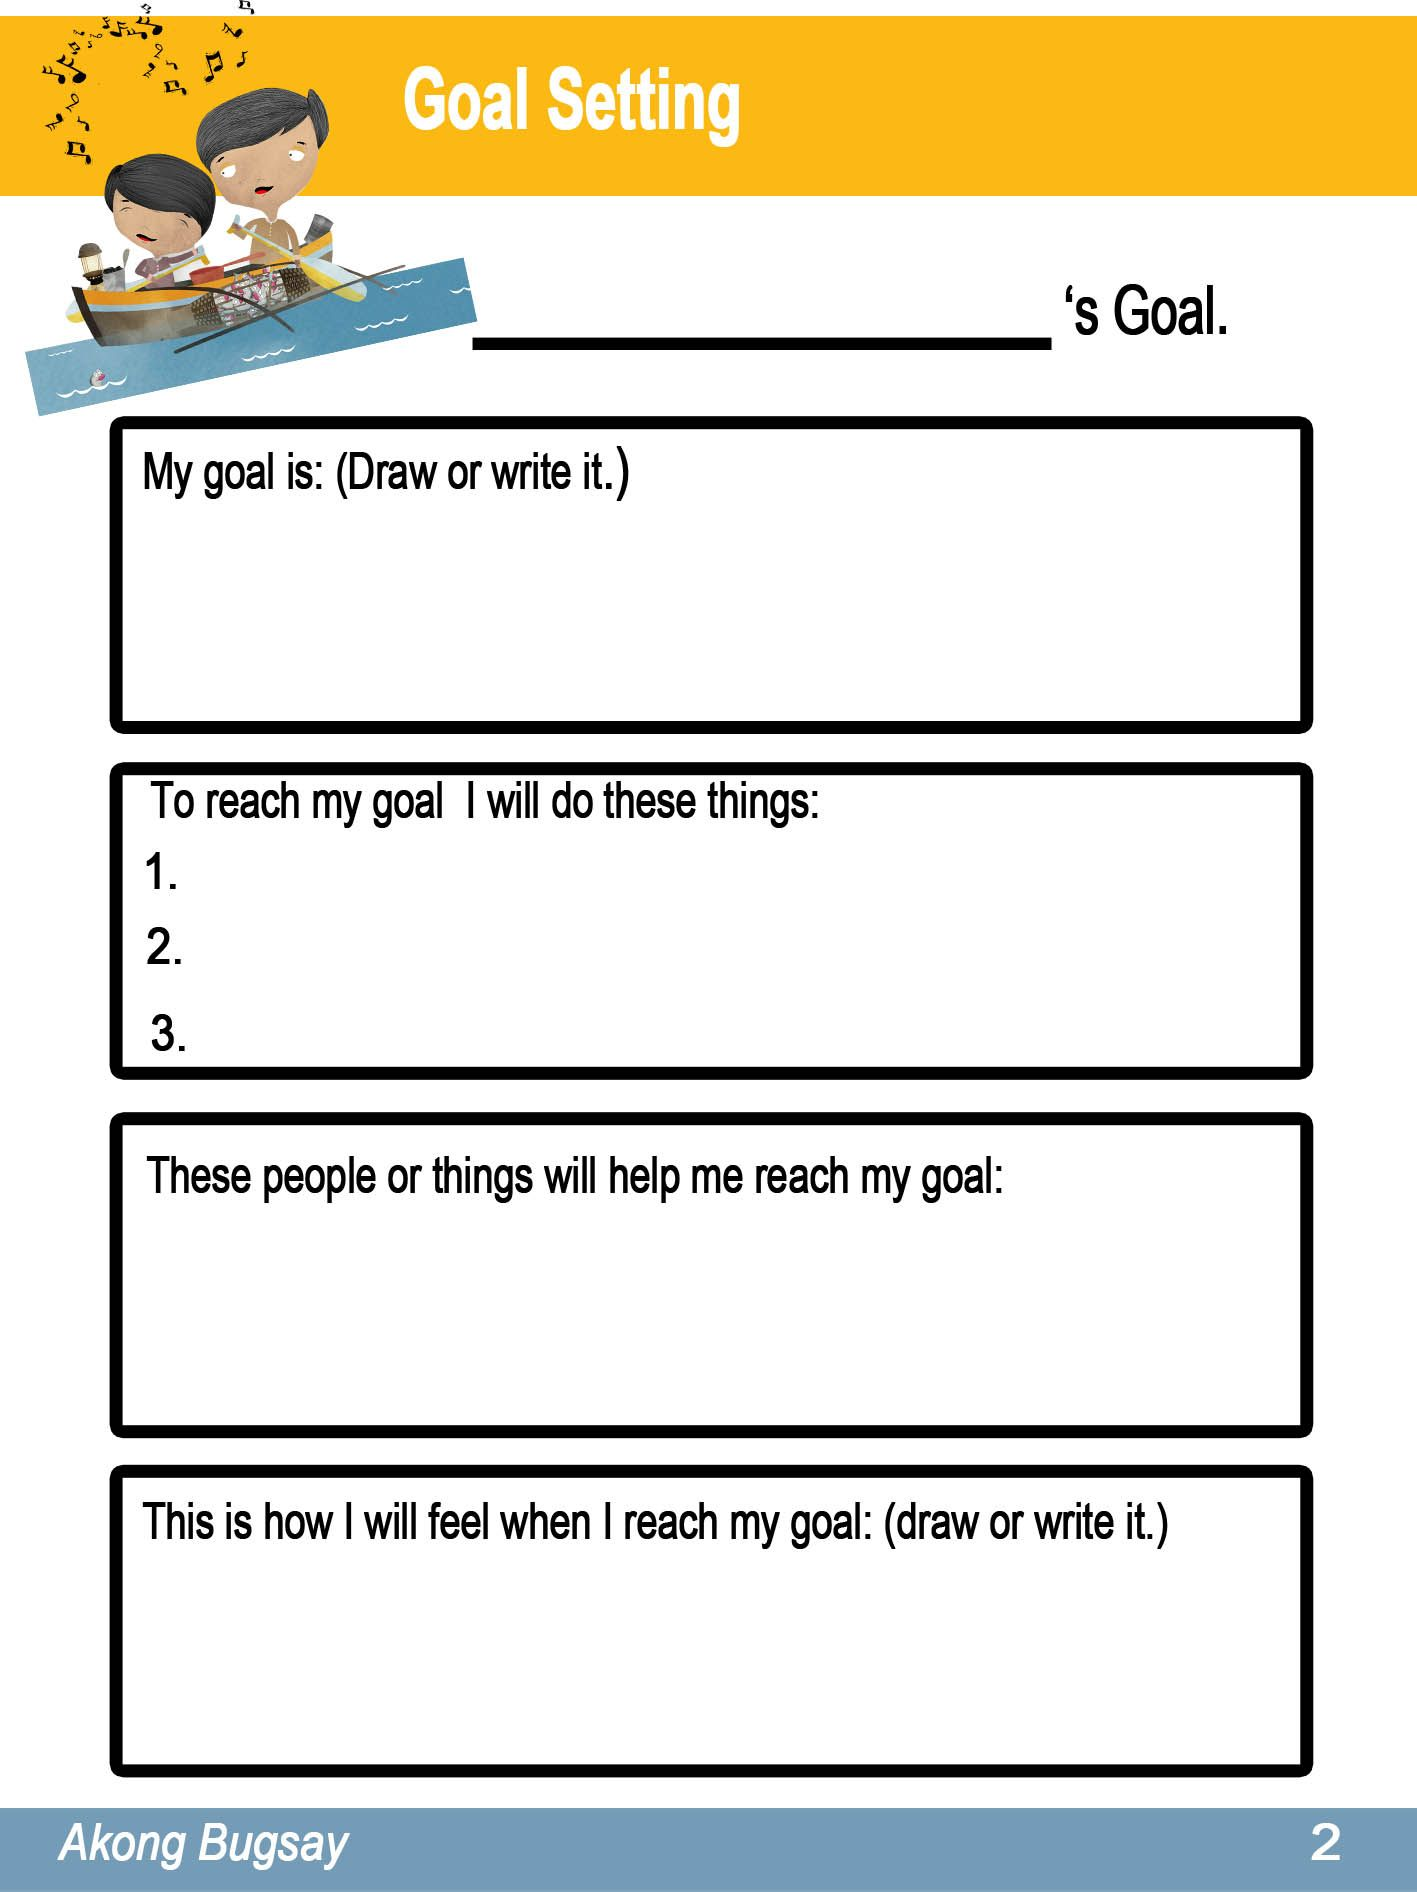 Worksheets High School Goal Setting Worksheet goalsetting copy jpg pixels school pinterest goal setting sheet settings and school